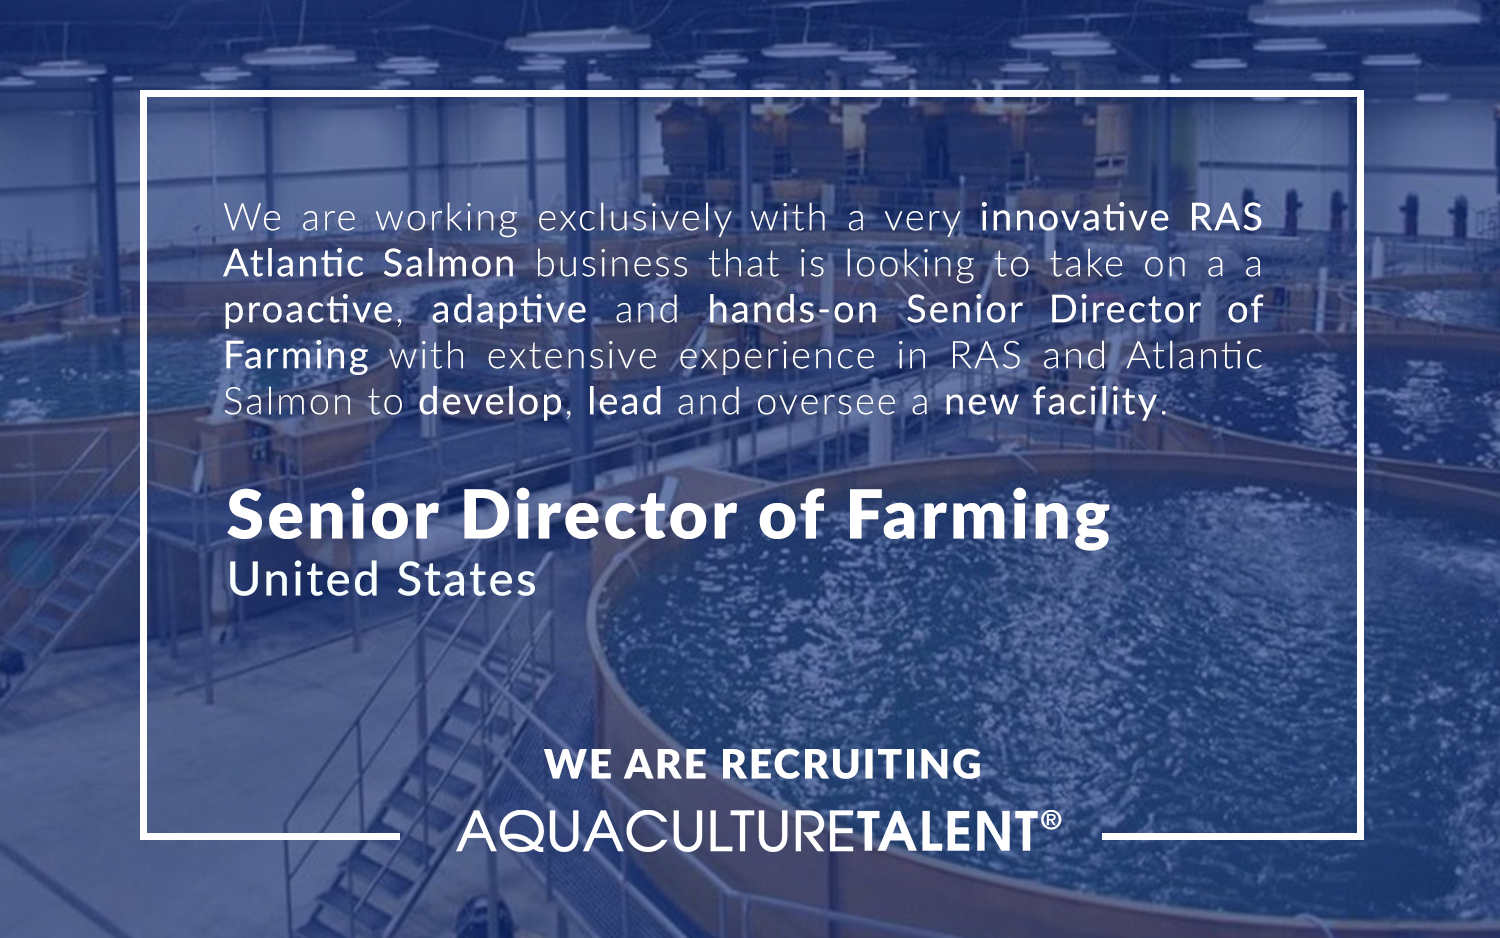 We are working exclusively with a very innovative RAS Atlantic Salmon business that is looking to take on a a proactive, adaptive and hands-on Senior Director of Farming with extensive experience in RAS and Atlantic Salmon to develop, lead and oversee a new facility.